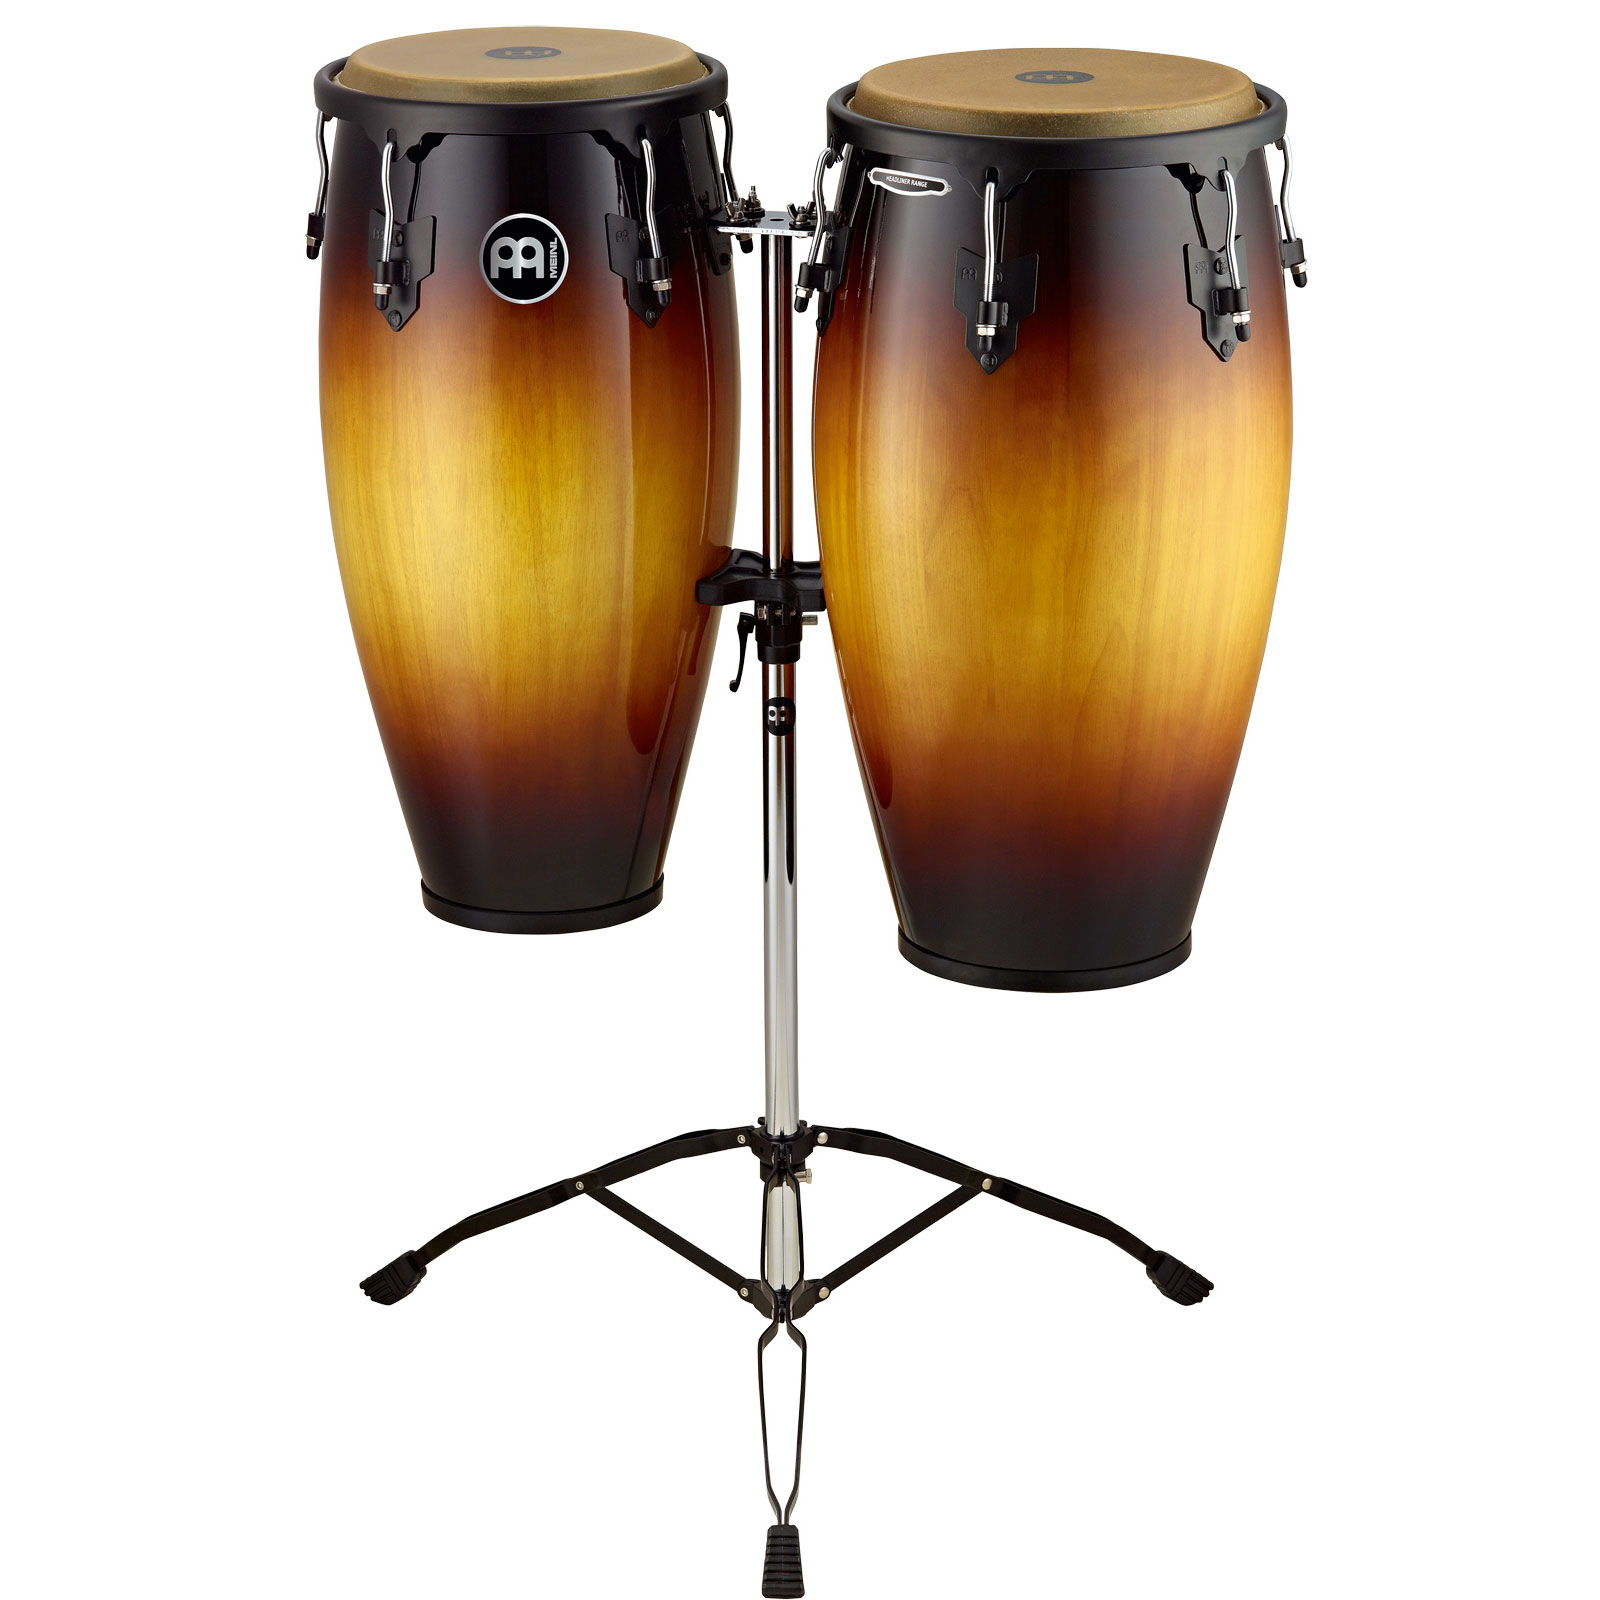 "Meinl 11"" & 12"" Headliner Series Conga Set in Vintage Sunburst with Stand"